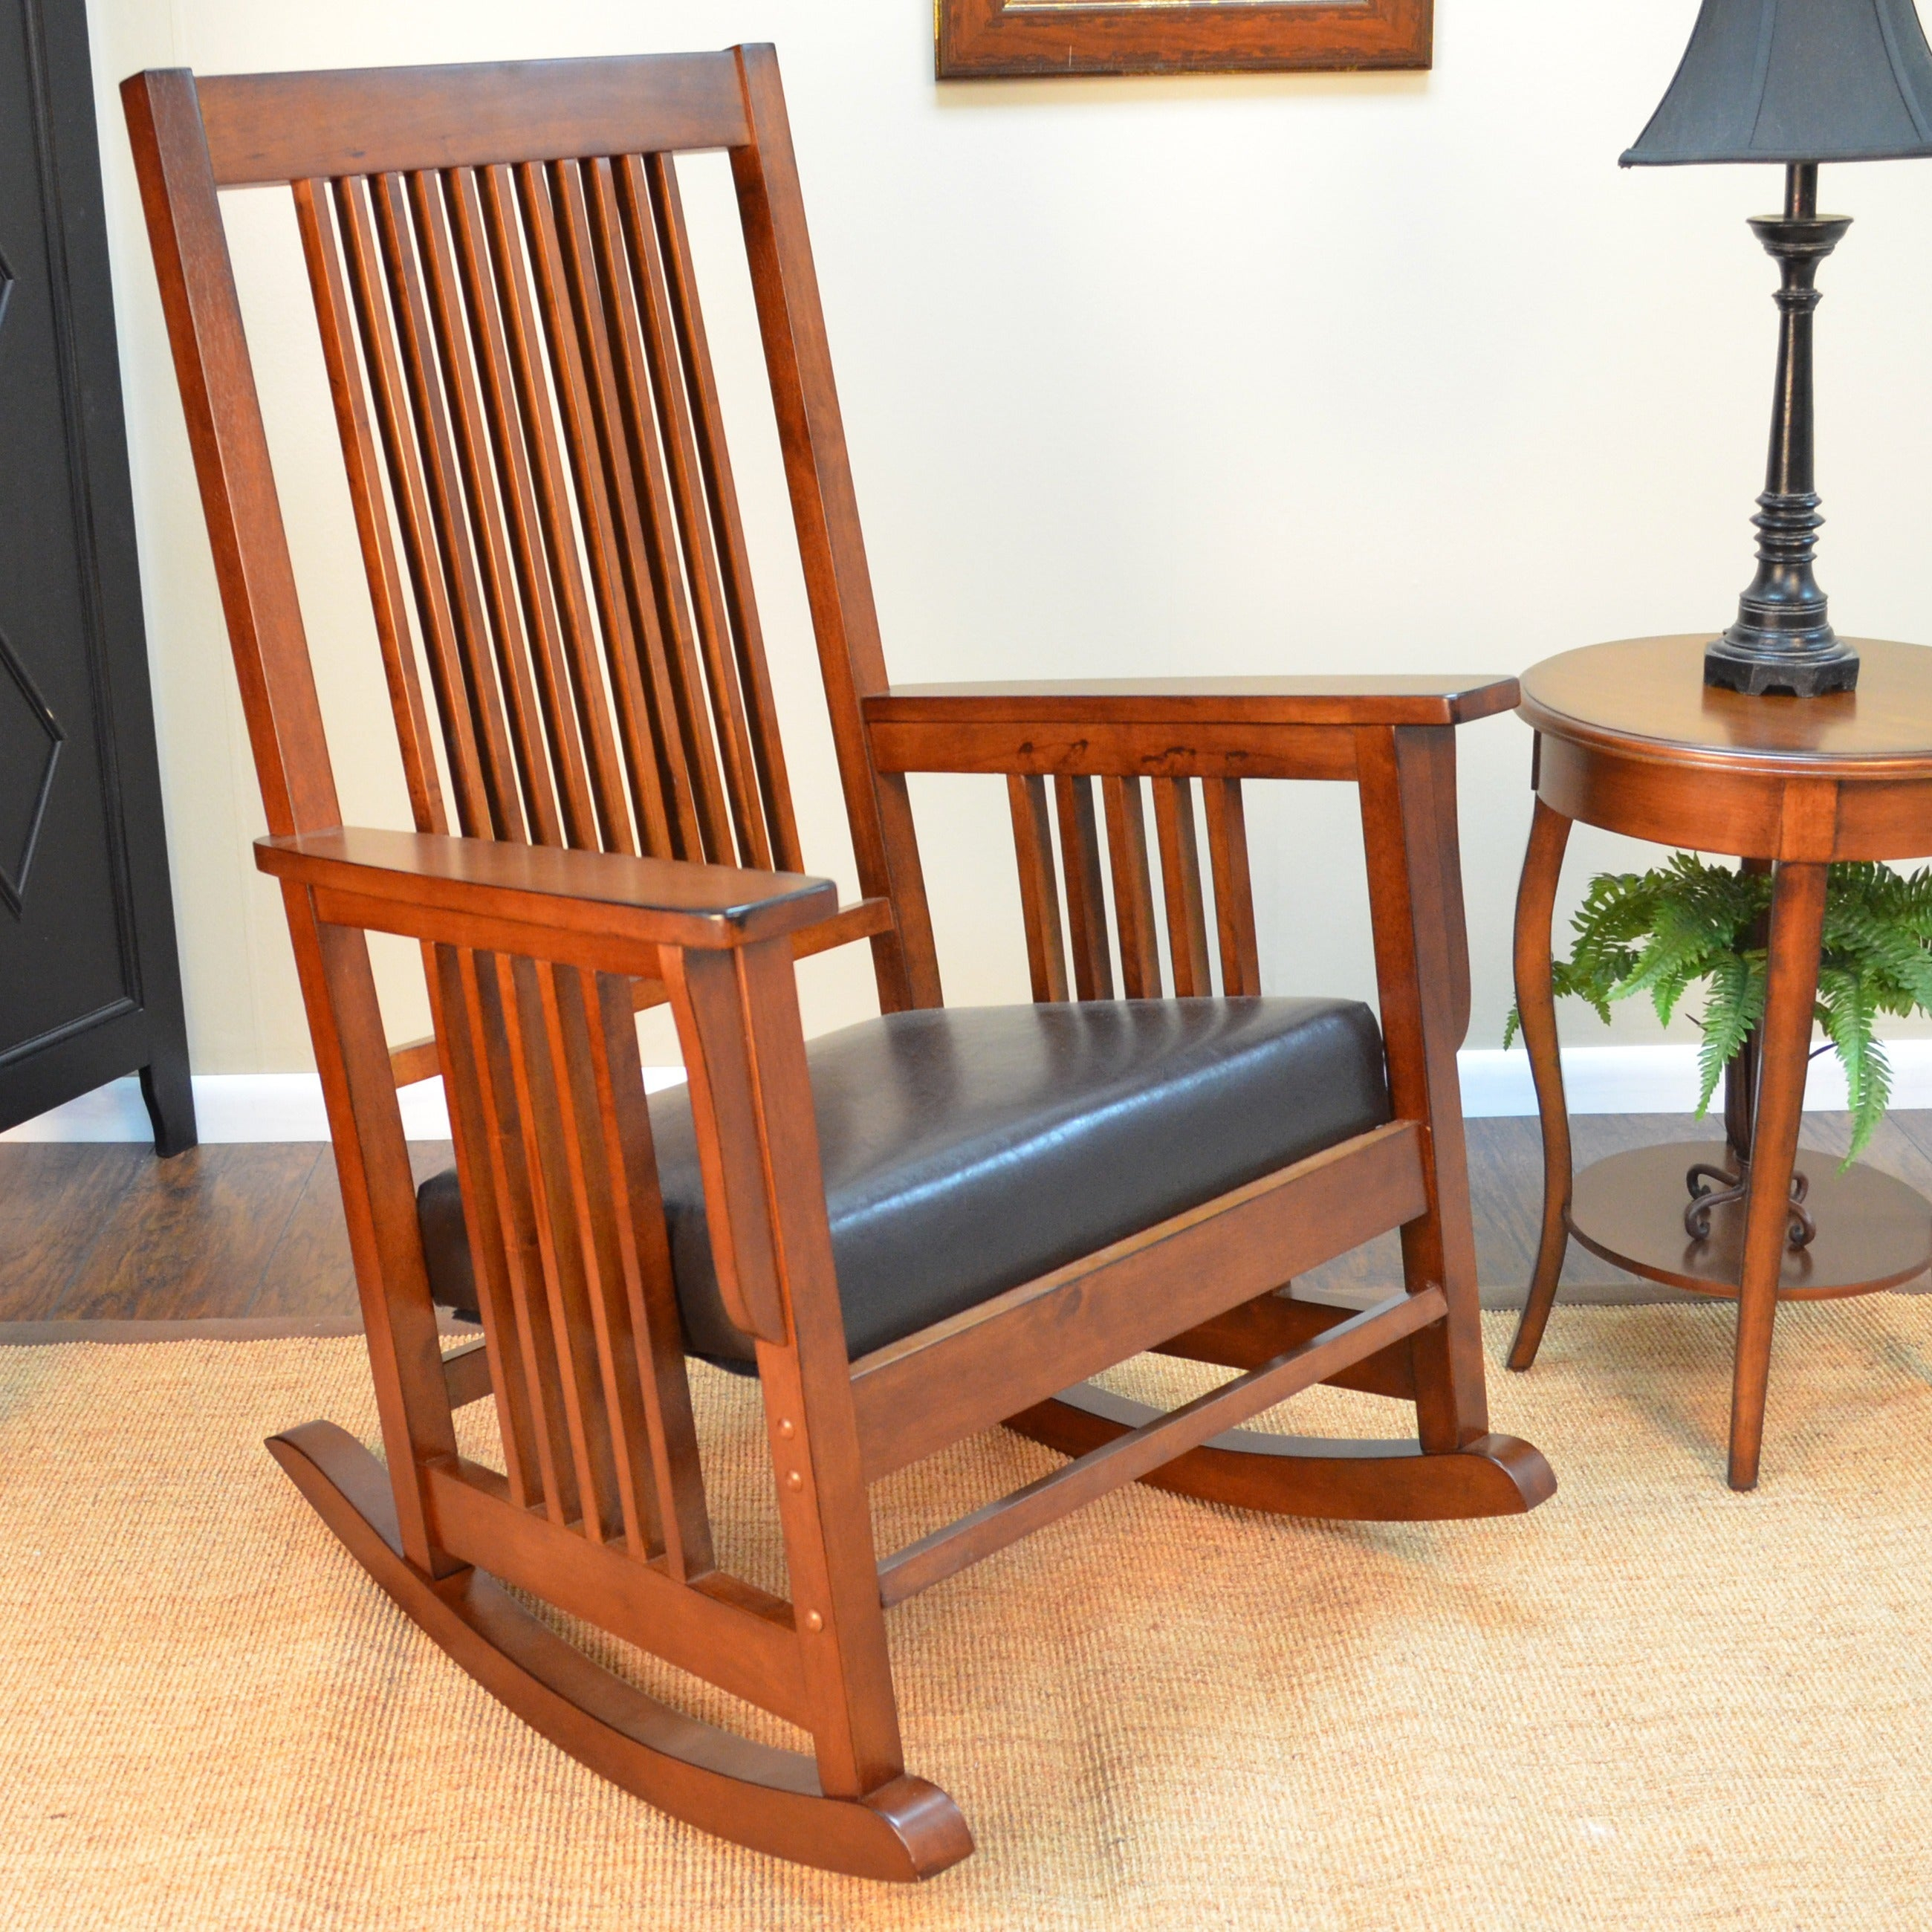 Buy Rocking Chairs, Traditional Living Room Chairs Online At Pertaining To Radford Traditional Rocking Chairs (View 8 of 20)